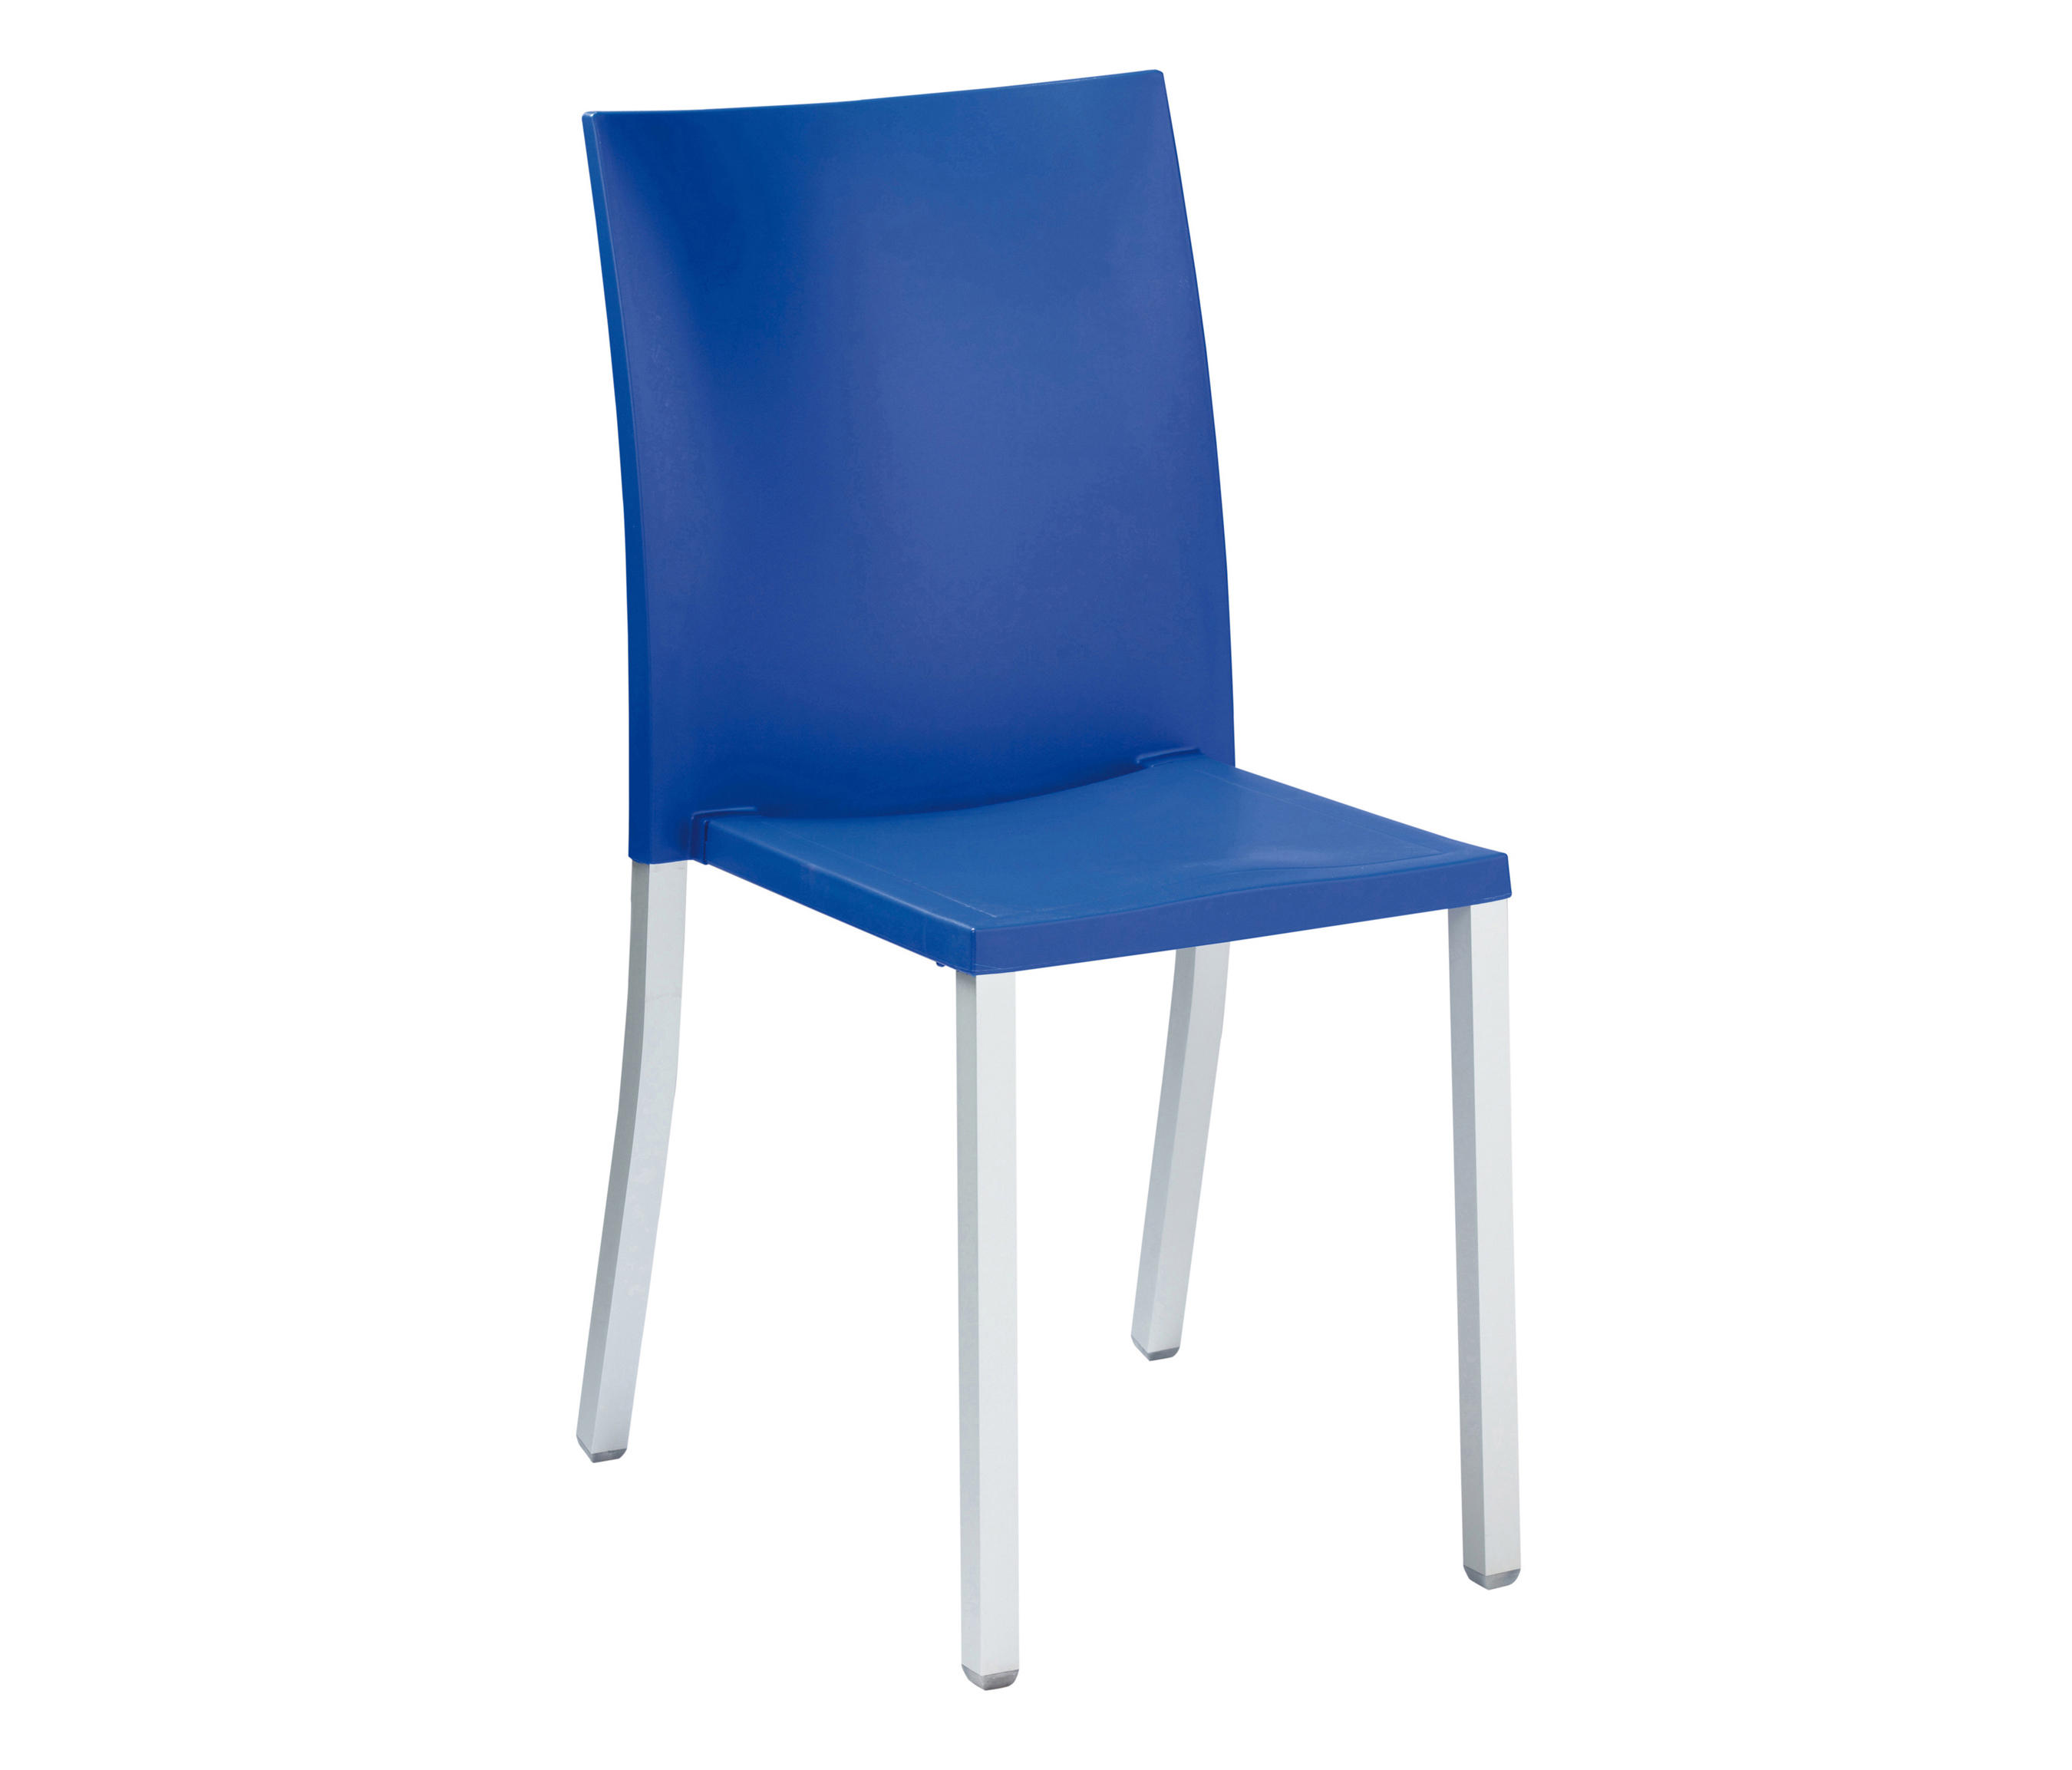 LIBERTY Multipurpose chairs from Gaber